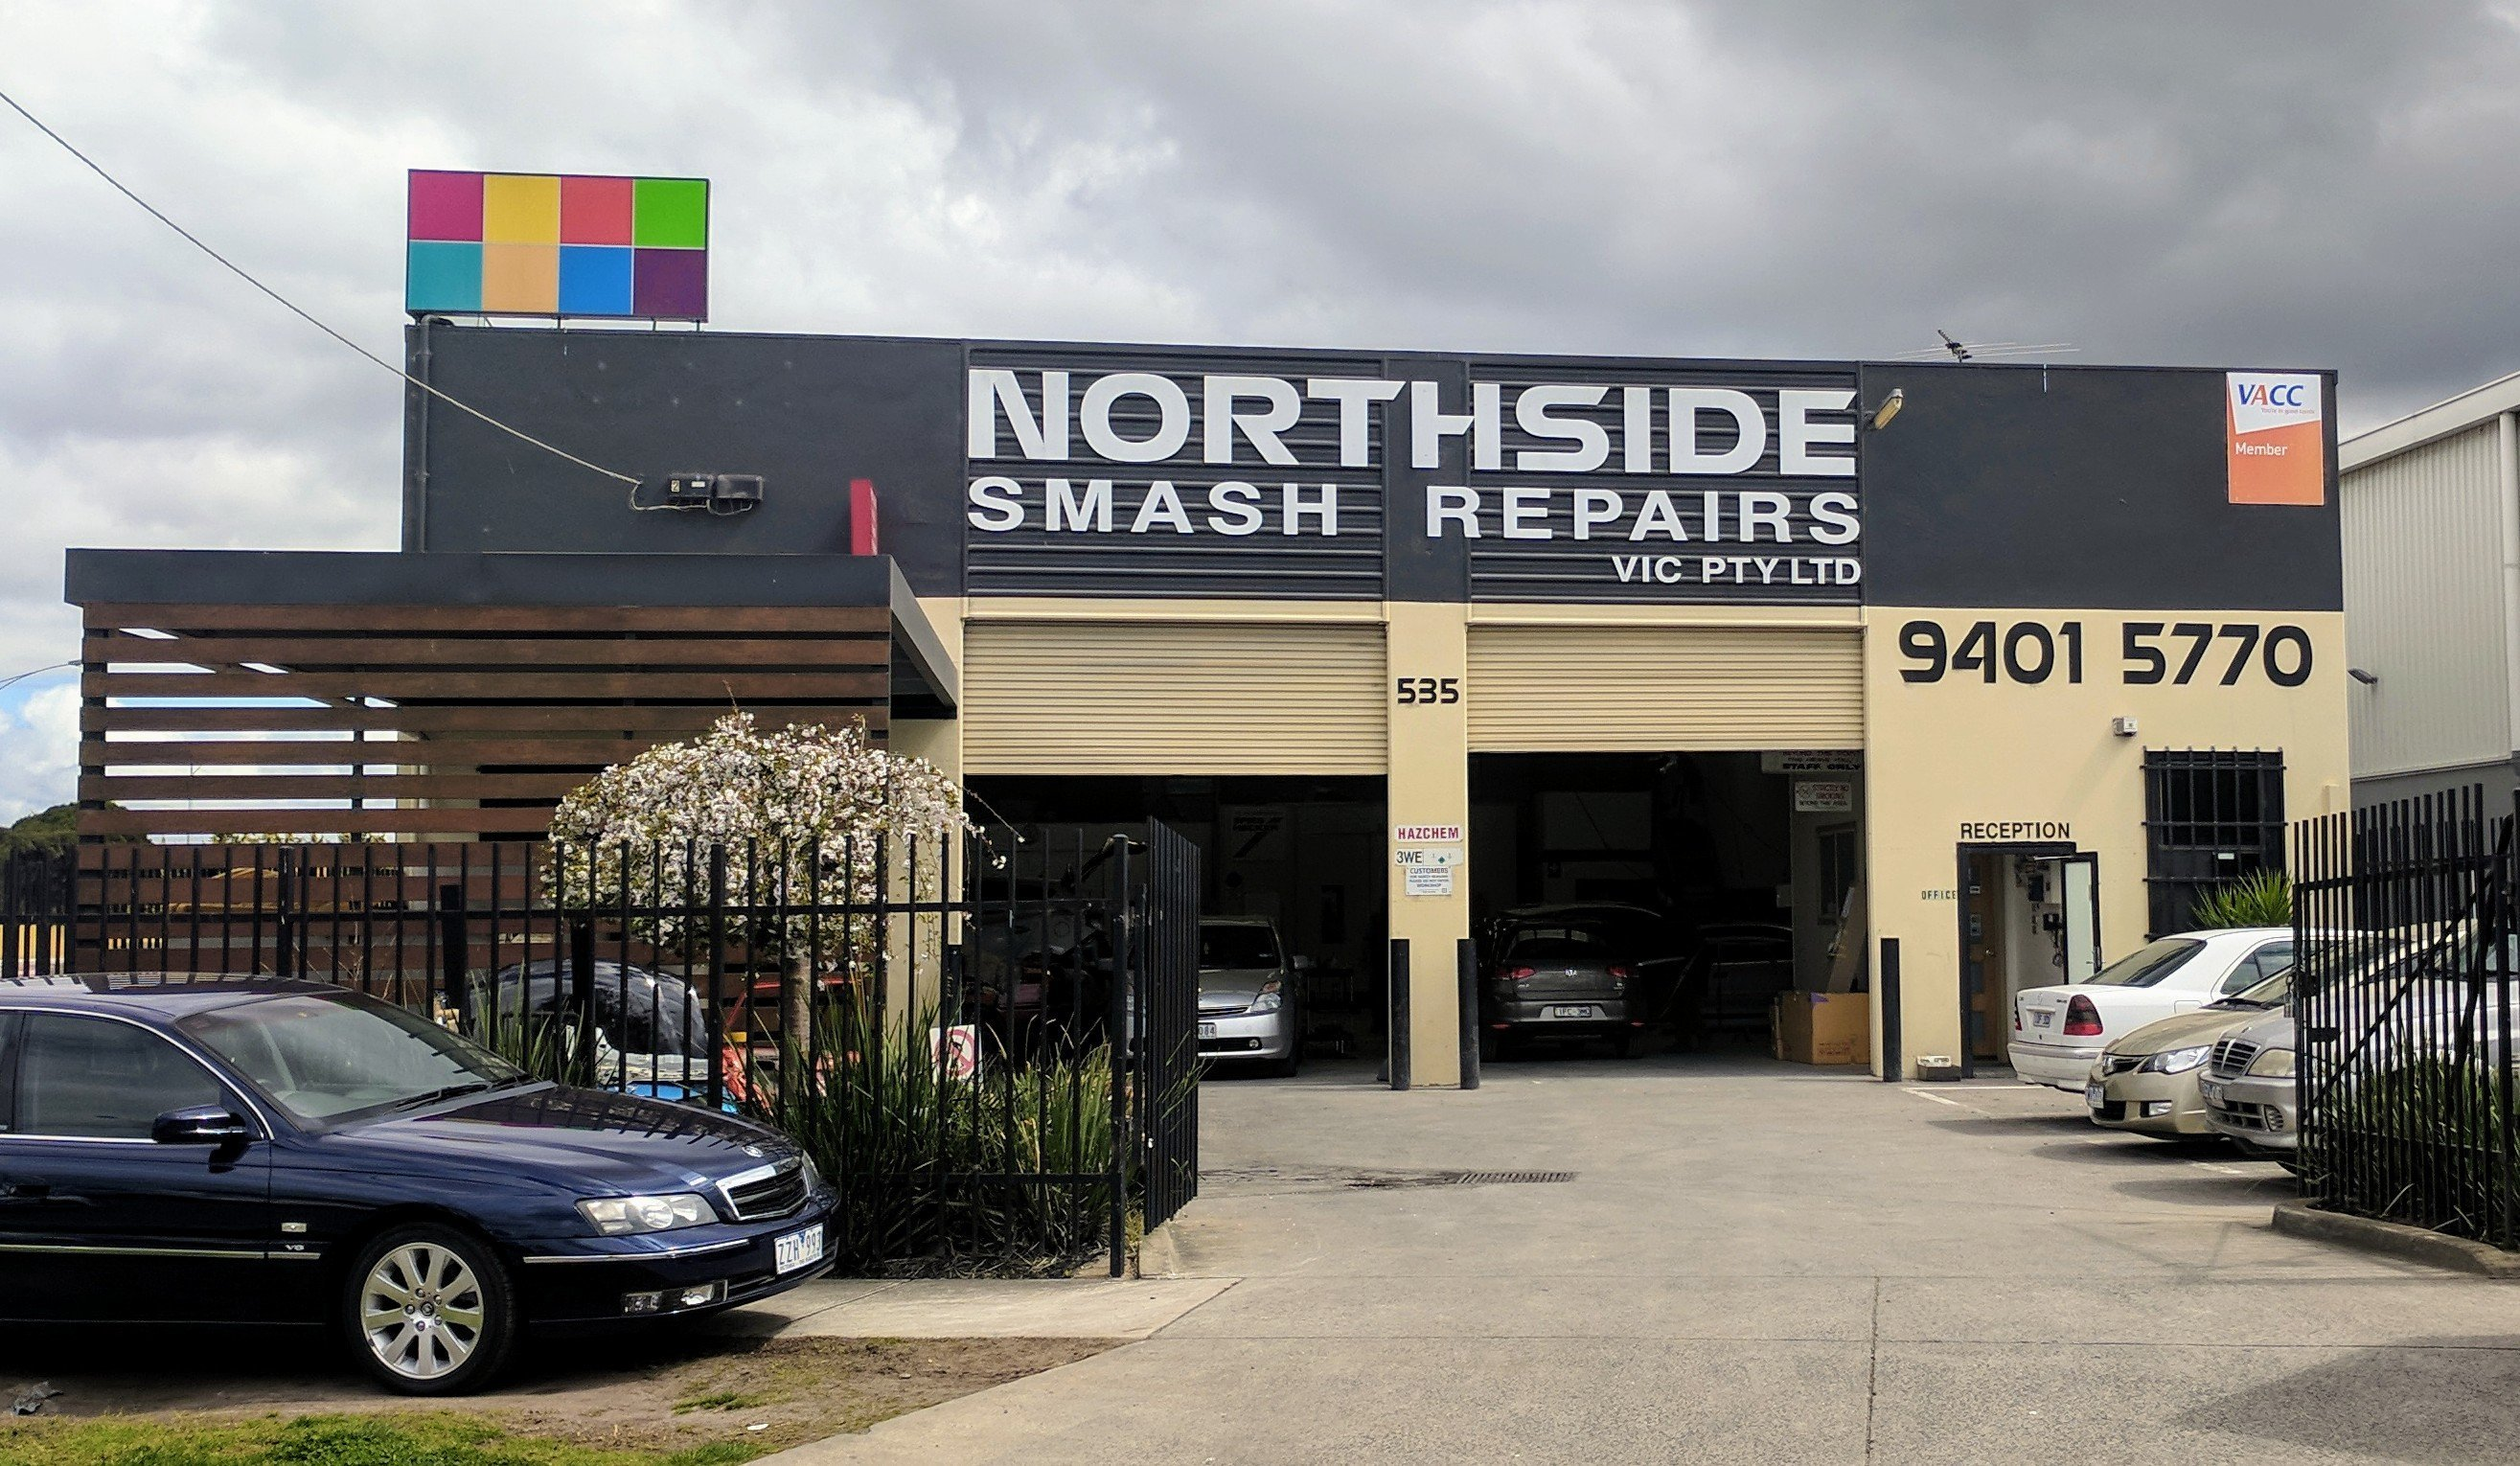 Northside smash repairs Epping